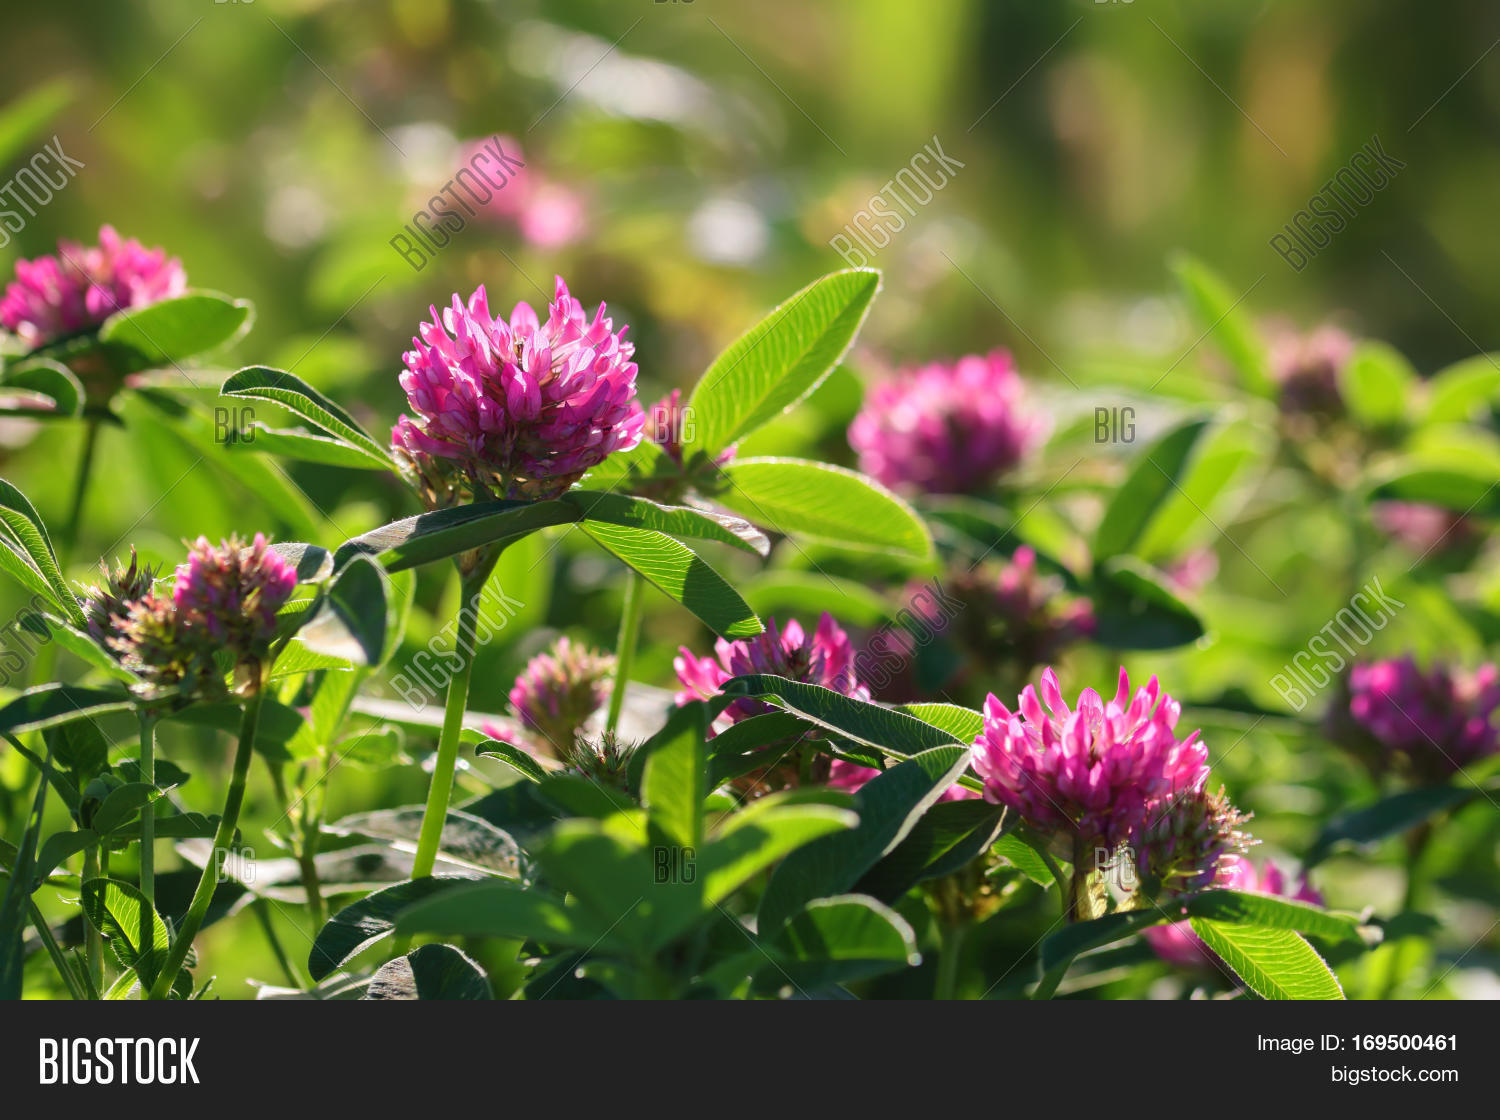 Pink Clover Flowers On Image Photo Free Trial Bigstock